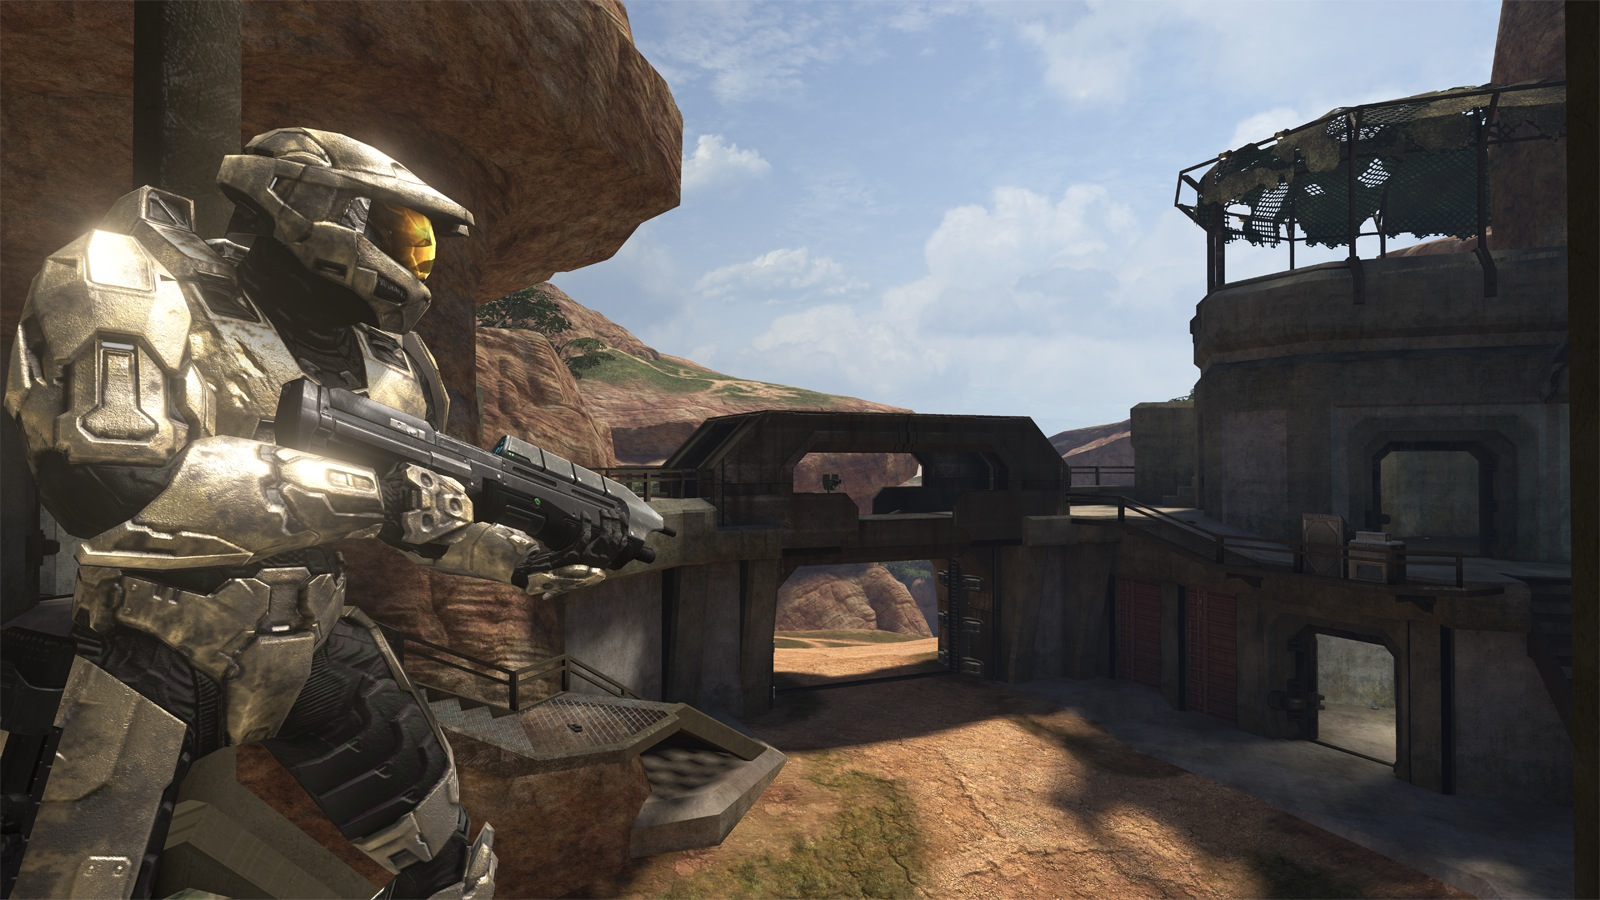 Halo reach video looks fantastic n4g - Master chief in halo reach ...